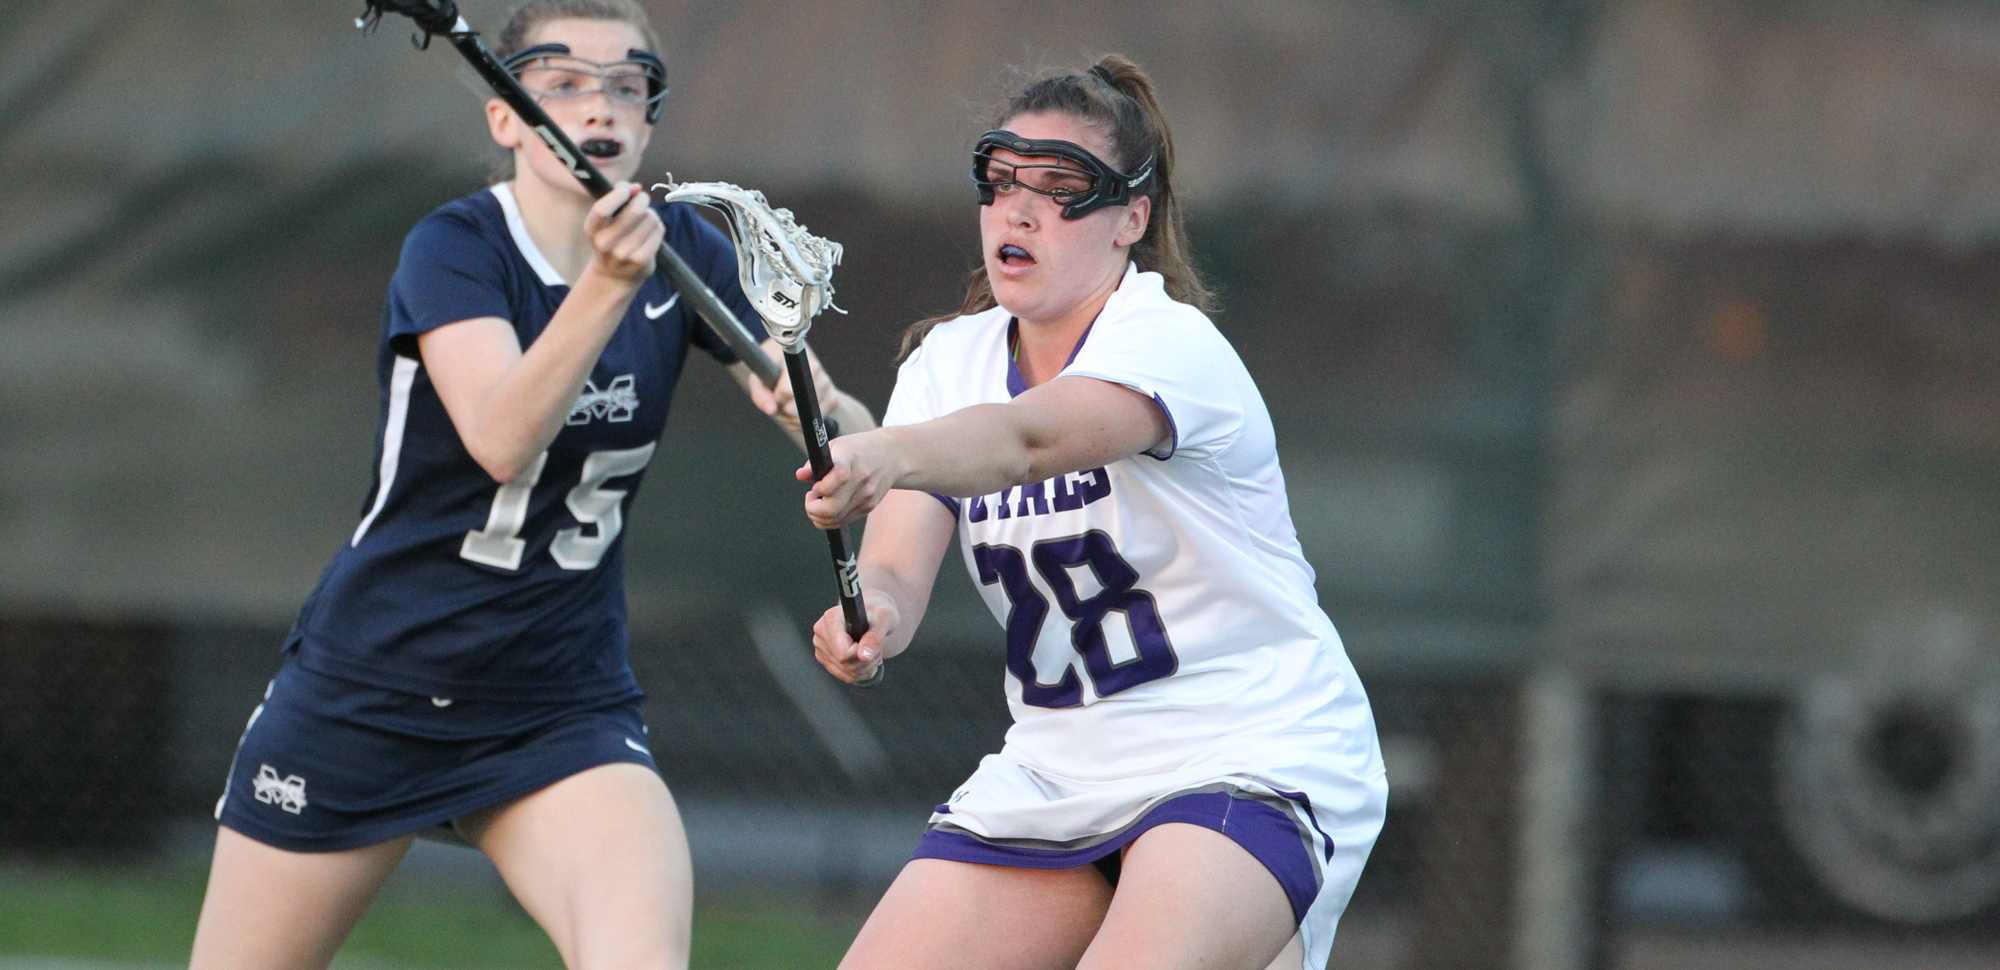 Morgan Windisch scored three goals for Scranton in Saturday's Landmark championship game at Catholic.